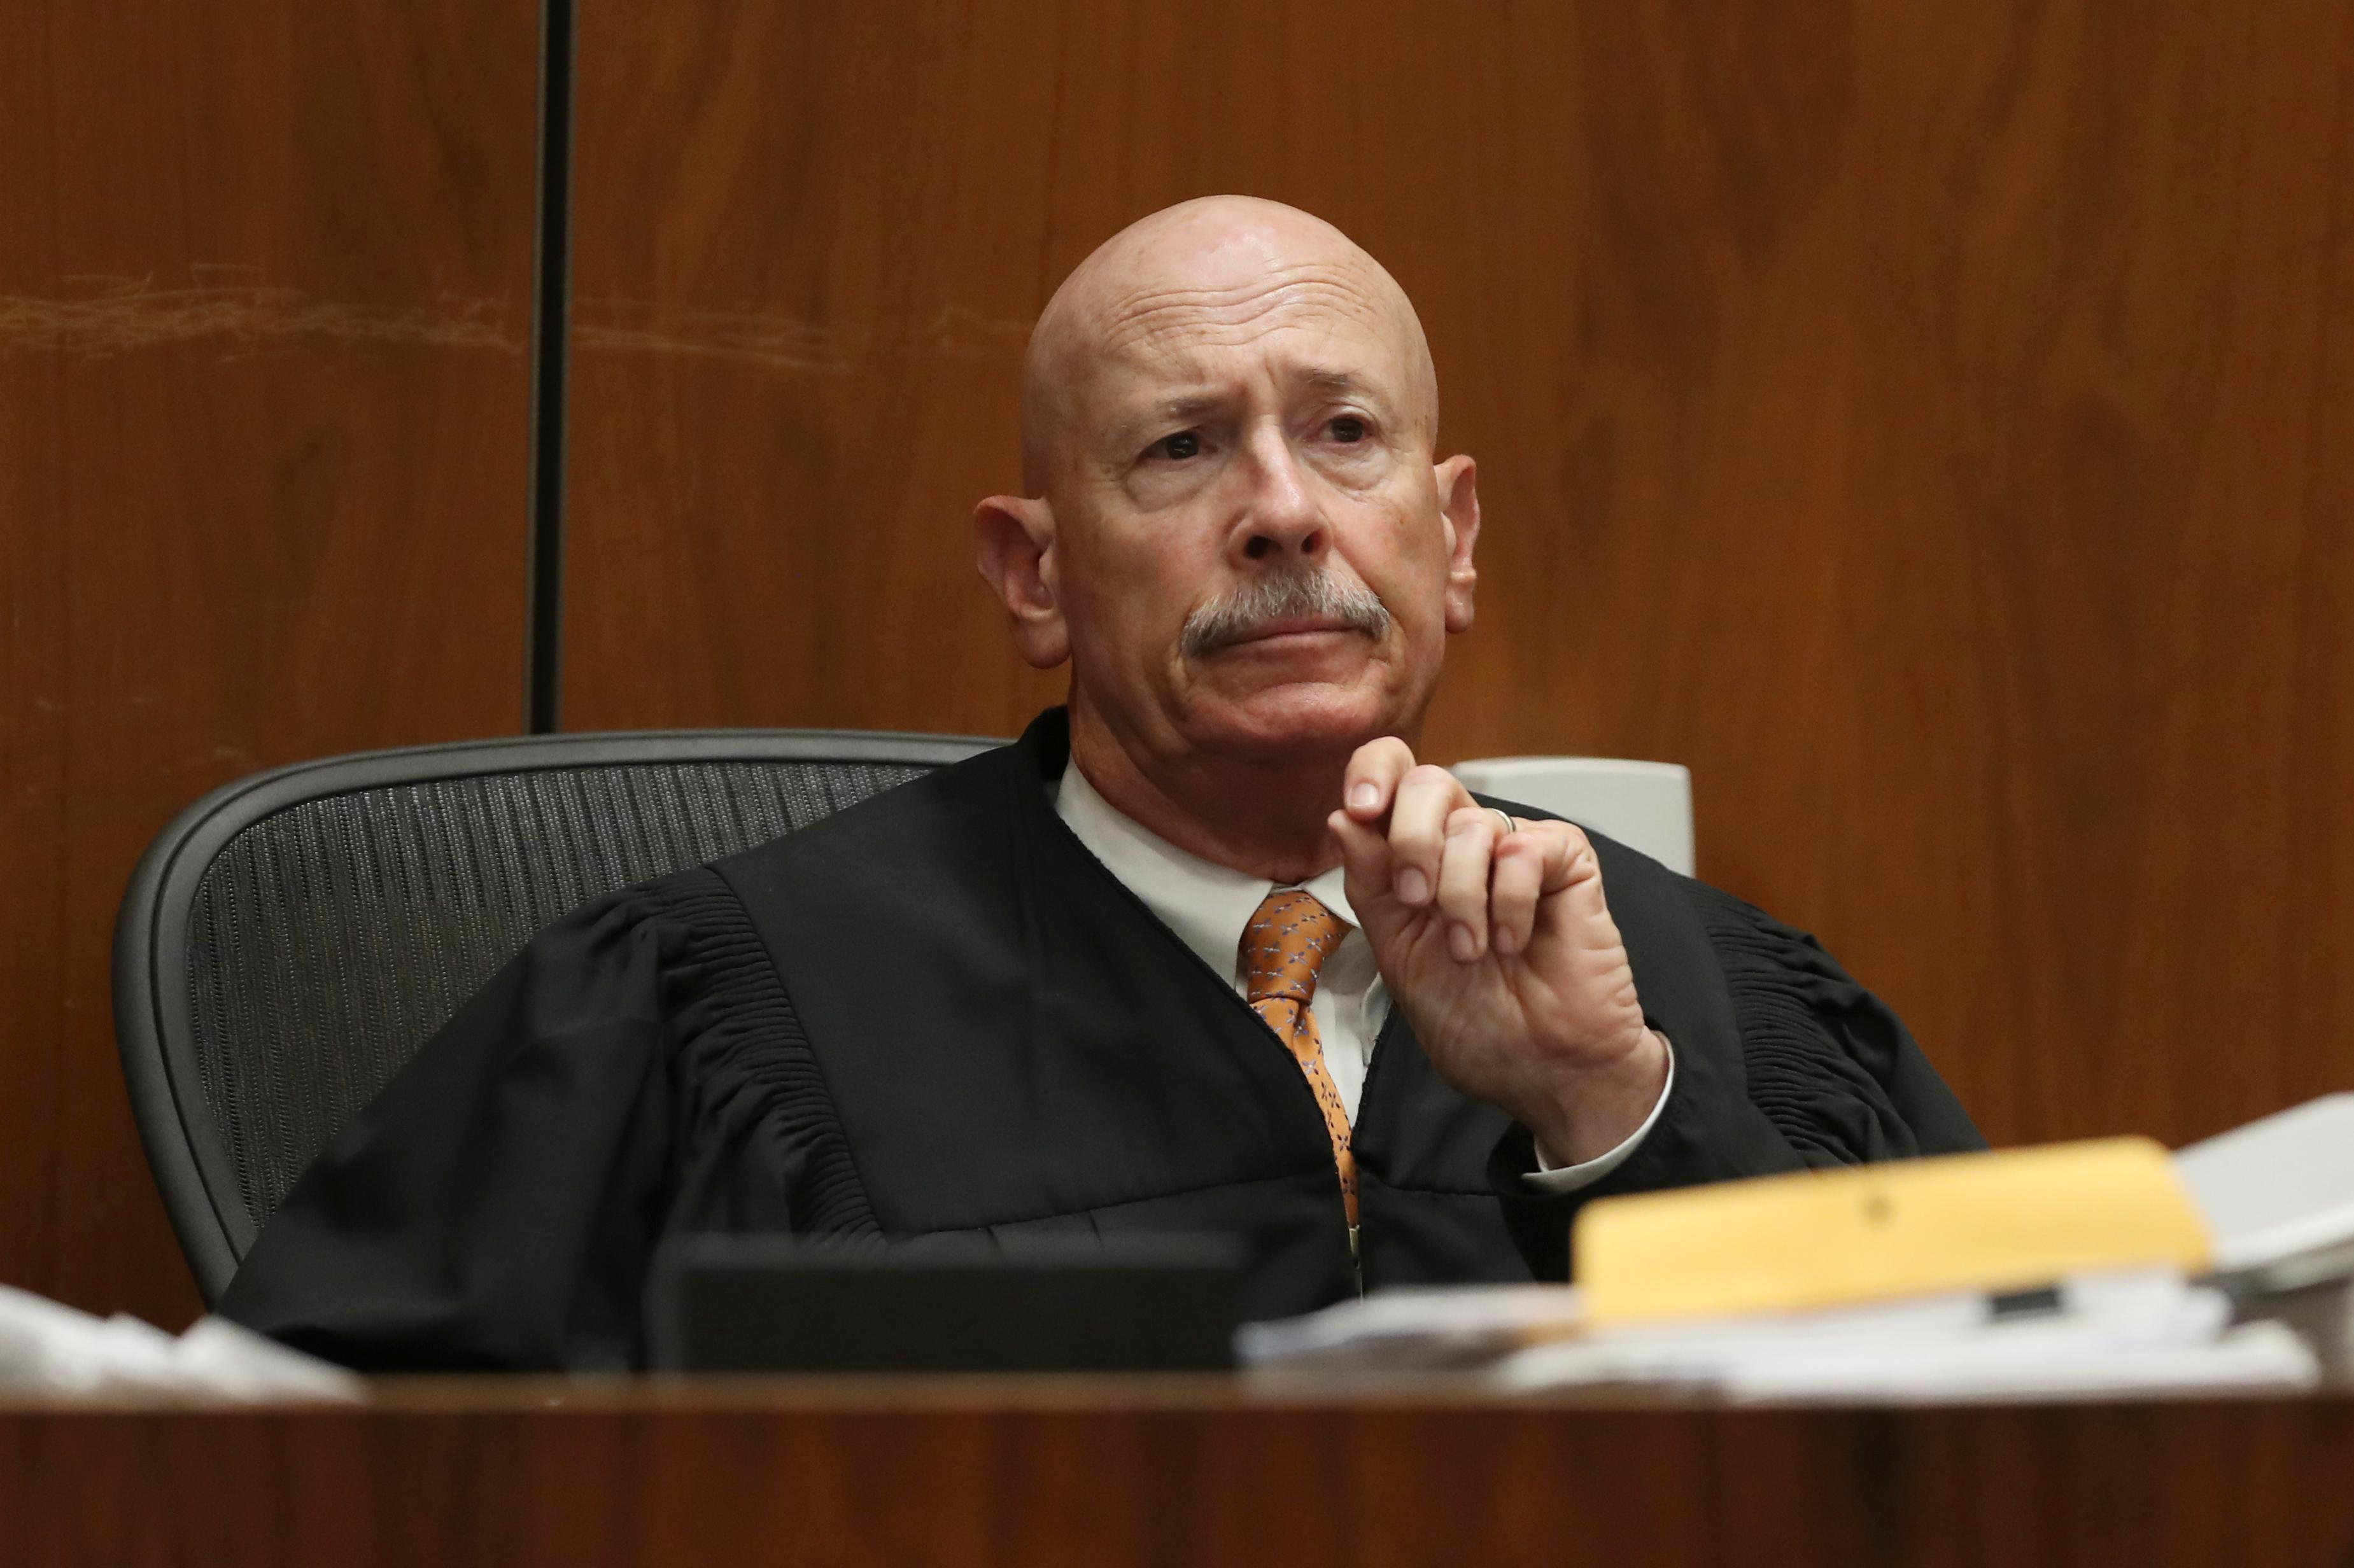 Judge Larry P. Fidler listens to closing arguments in the trial of People vs. Michael Gargiulo Tuesday, Aug. 6, 2019, in Los Angeles. (Lucy Nicholson, Pool Photo via AP)